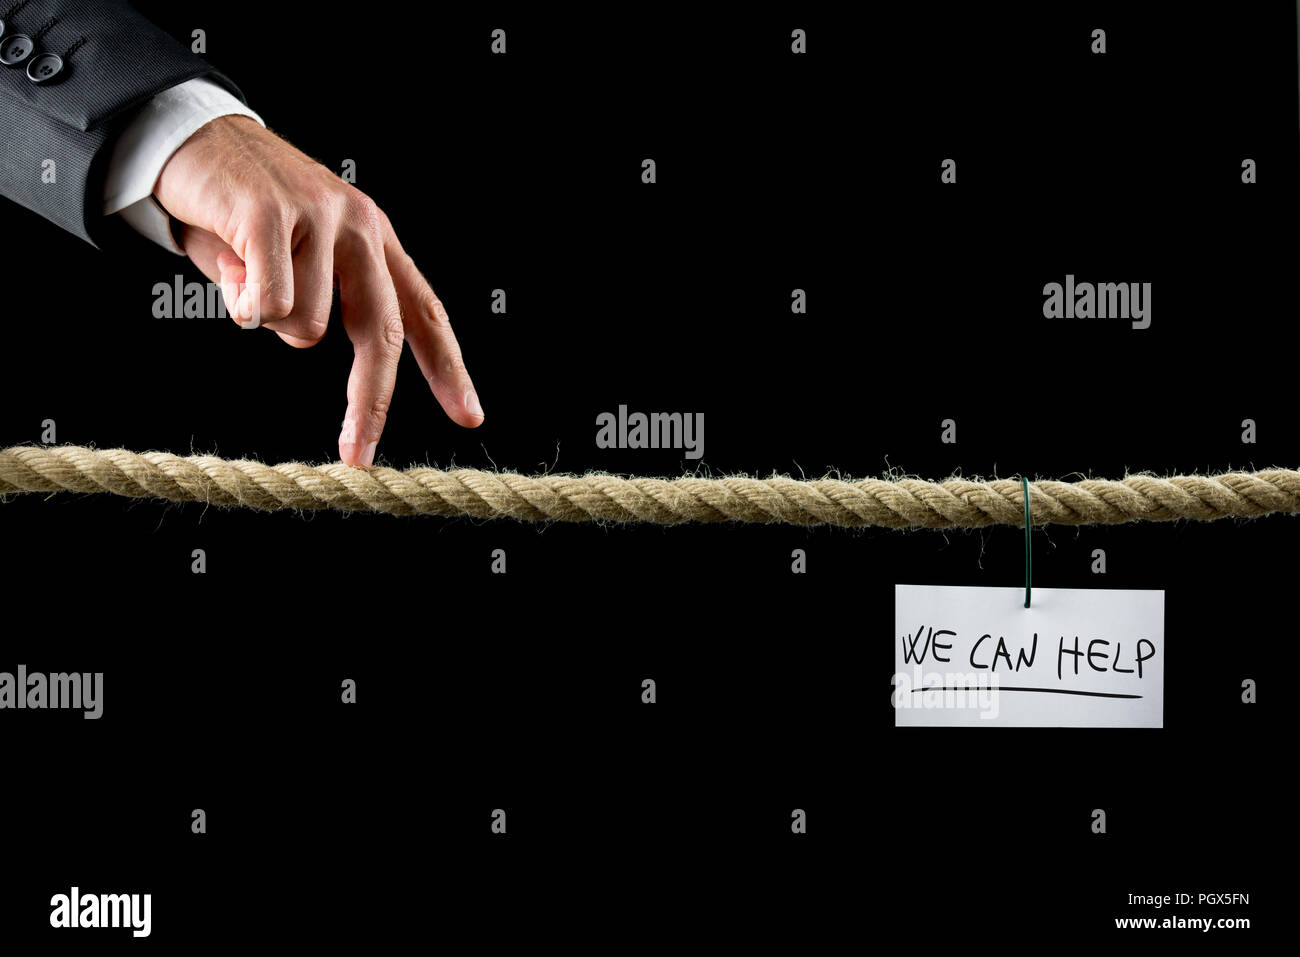 We Can Help concept with a hand written note bearing the words hanging on a wire from a rope suspended over a black background with a businessman walk - Stock Image